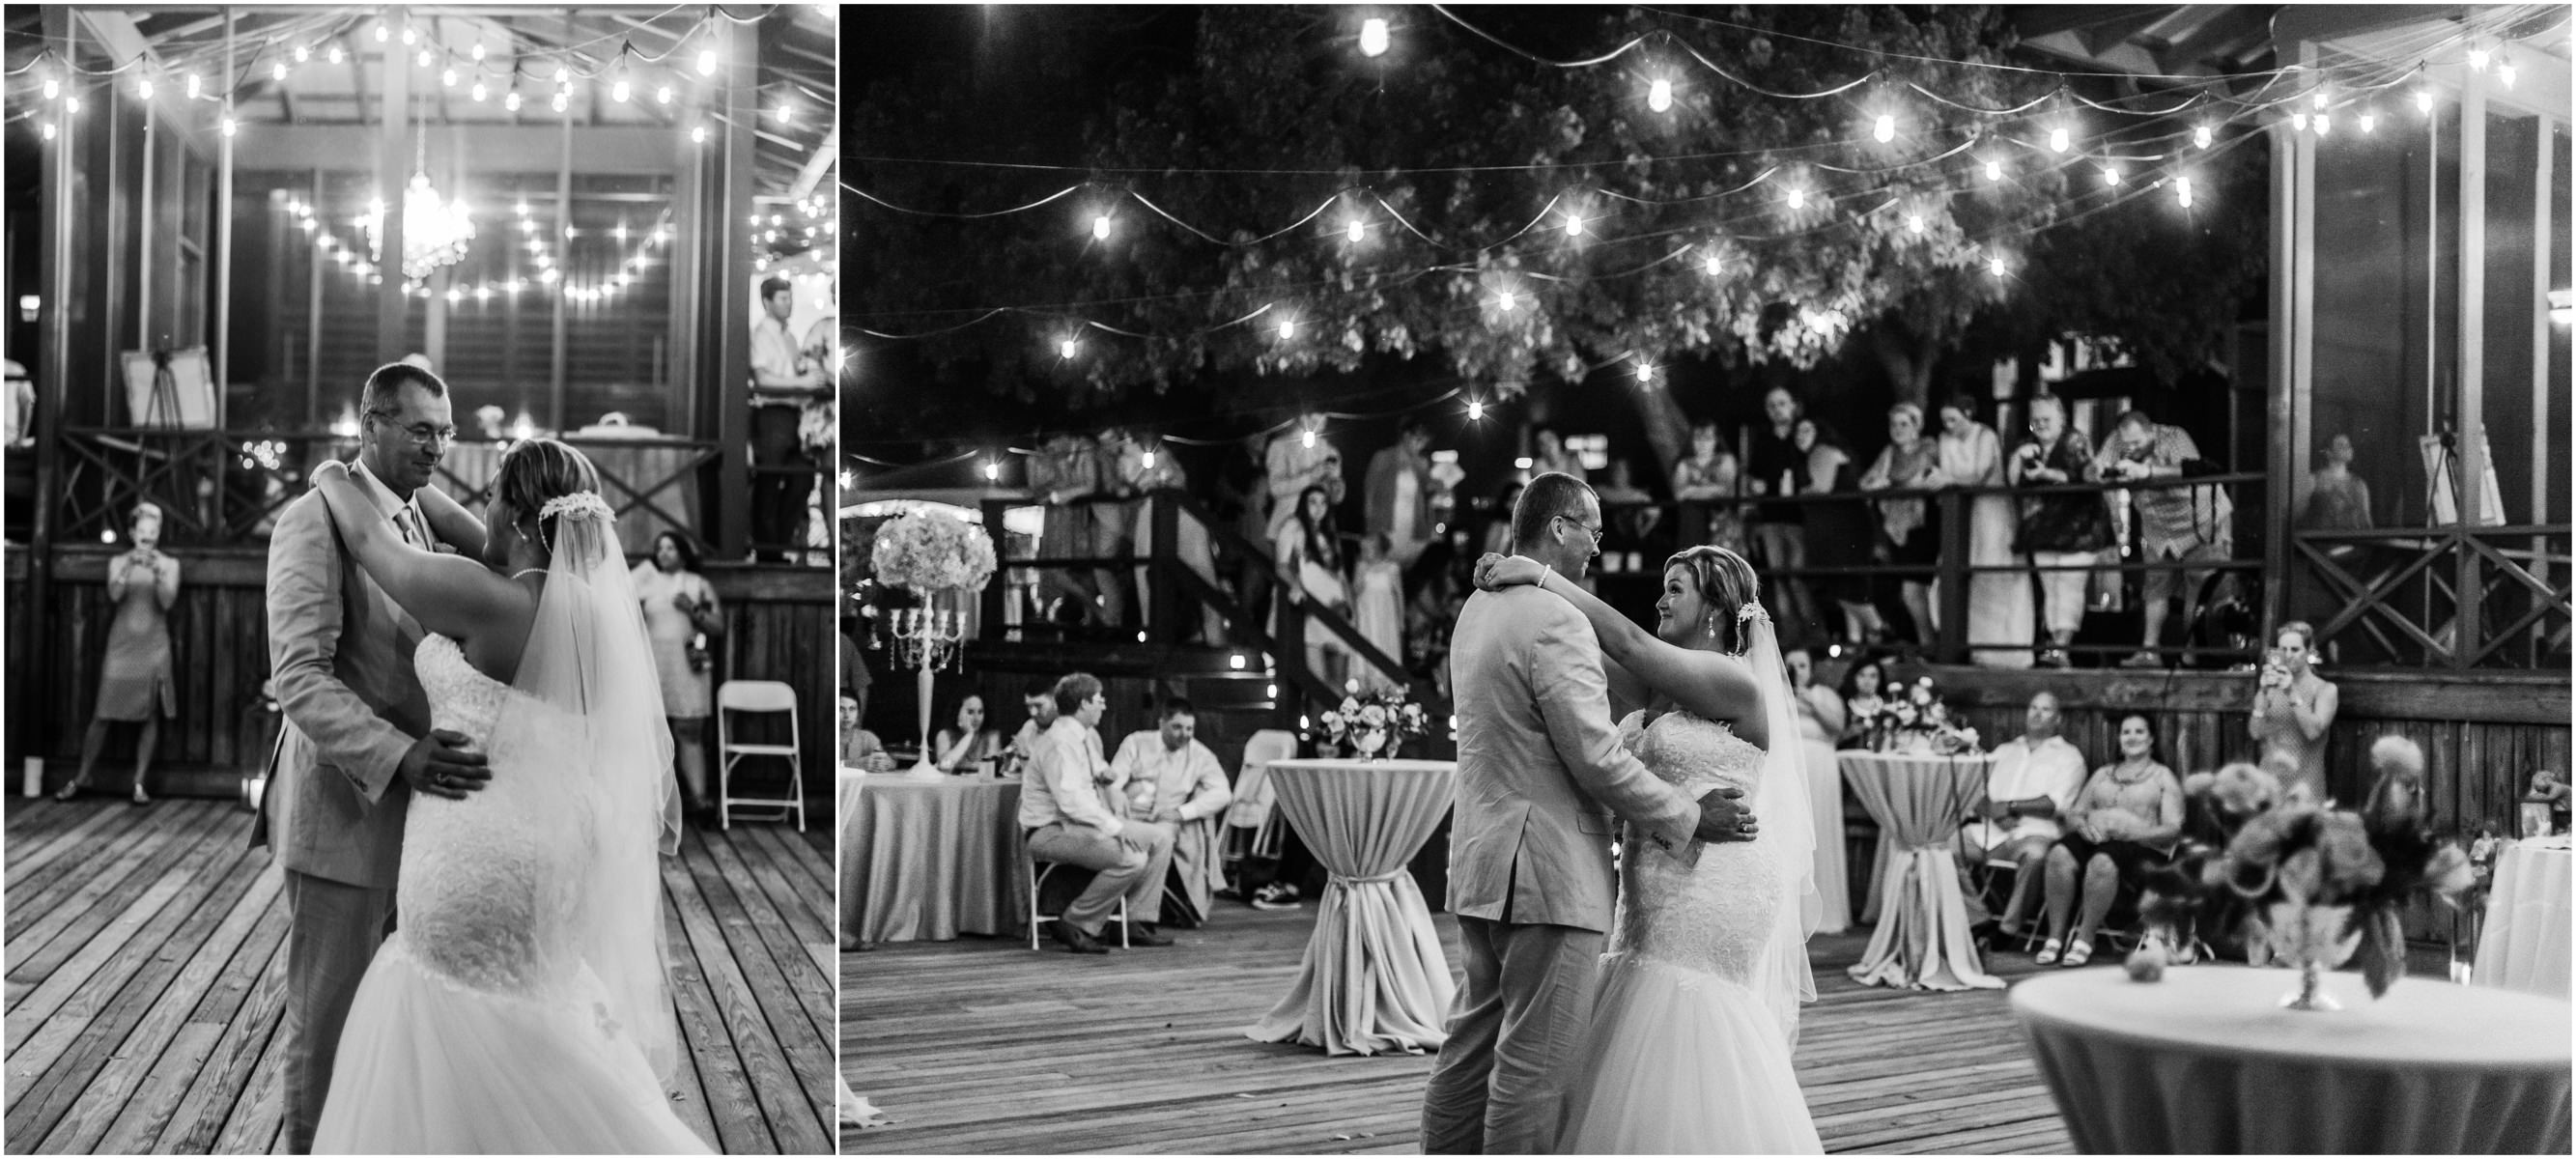 One Beautiful Southern Summertime Wedding In The Books Of Some Incredibly Awesome Folks